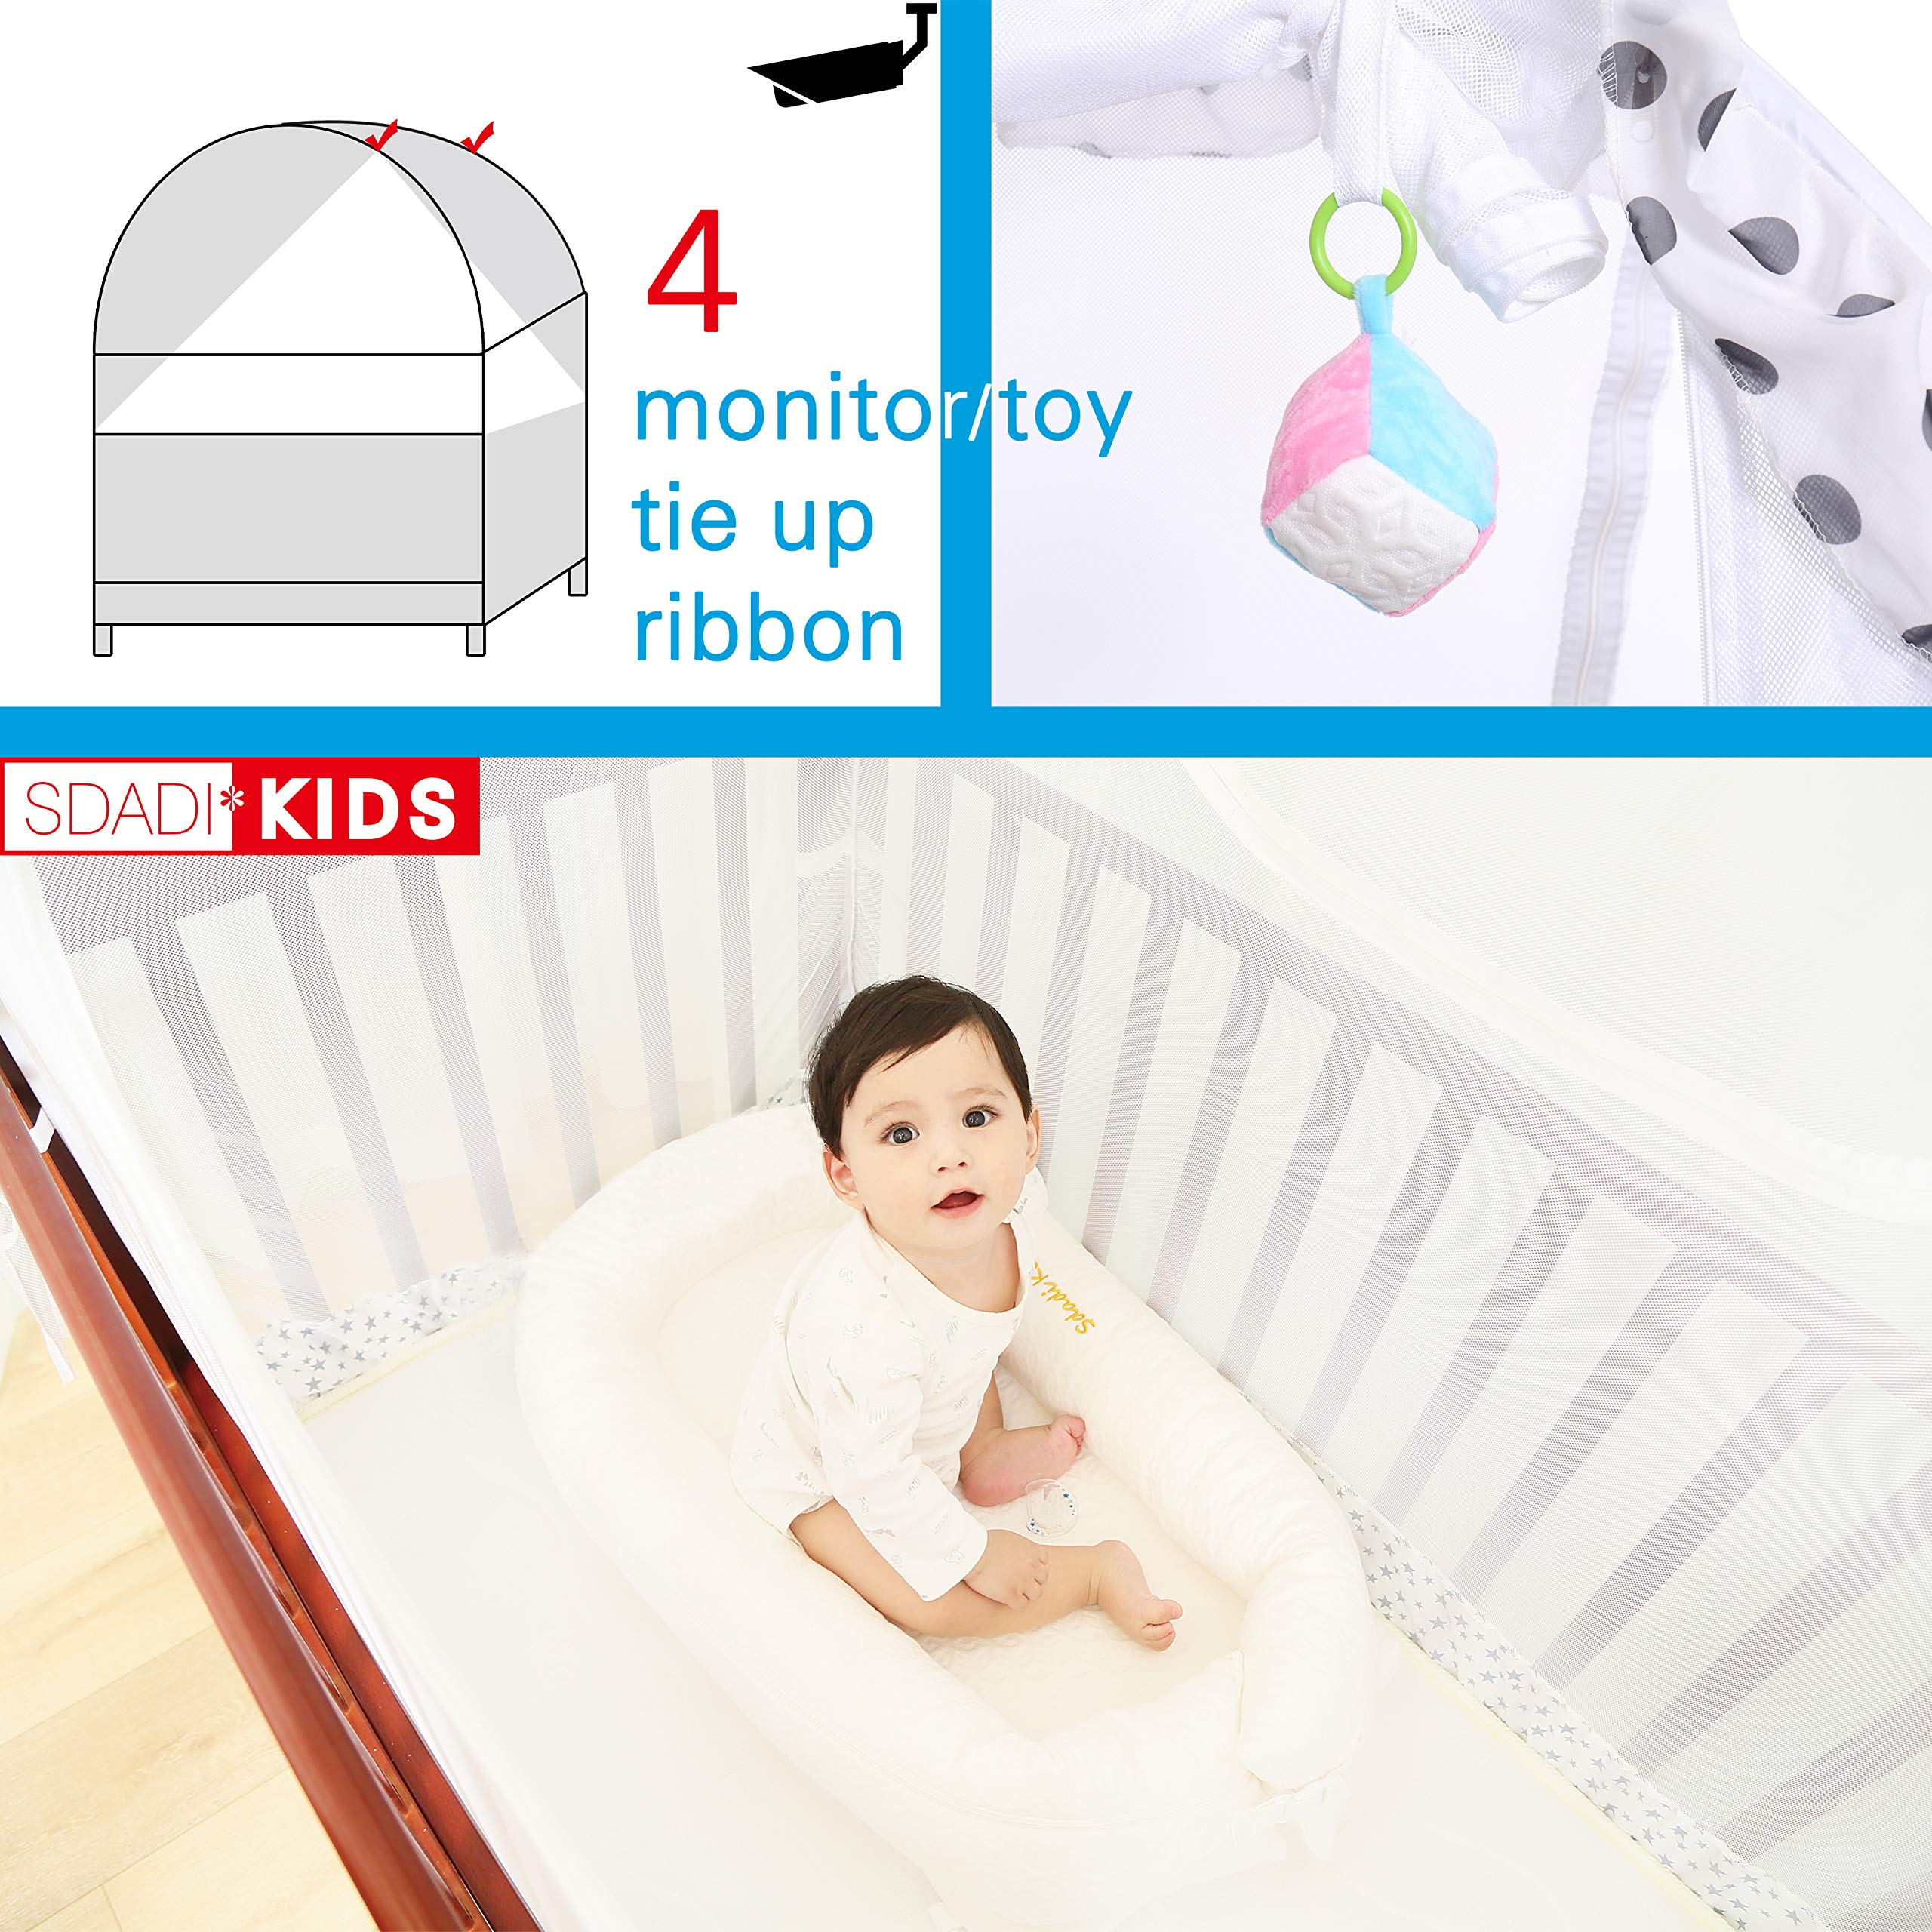 SDADI Baby Crib Safety Tent Pop Up Mosquito Net with Baby Monitor Hang Ribbon,Toddler Bed Canopy Netting Cover |Dots WLCN01D by SDADI (Image #5)